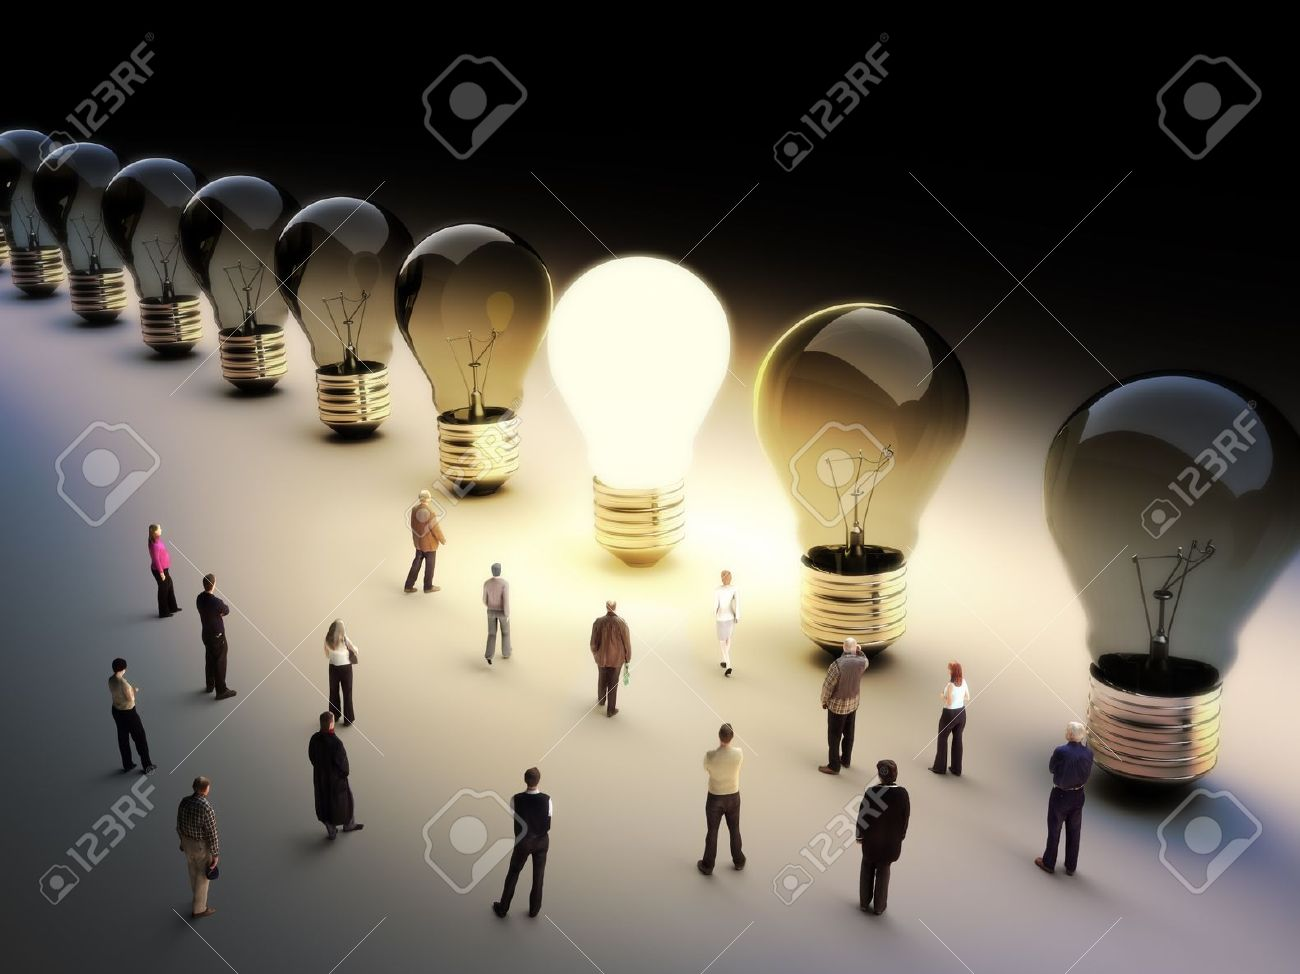 Light bulbs in a row with one being on, large group of people with a few moving to the light.Leading the pack, ingenuity,taking the initiative,standing out from the crowd concept. - 17724067